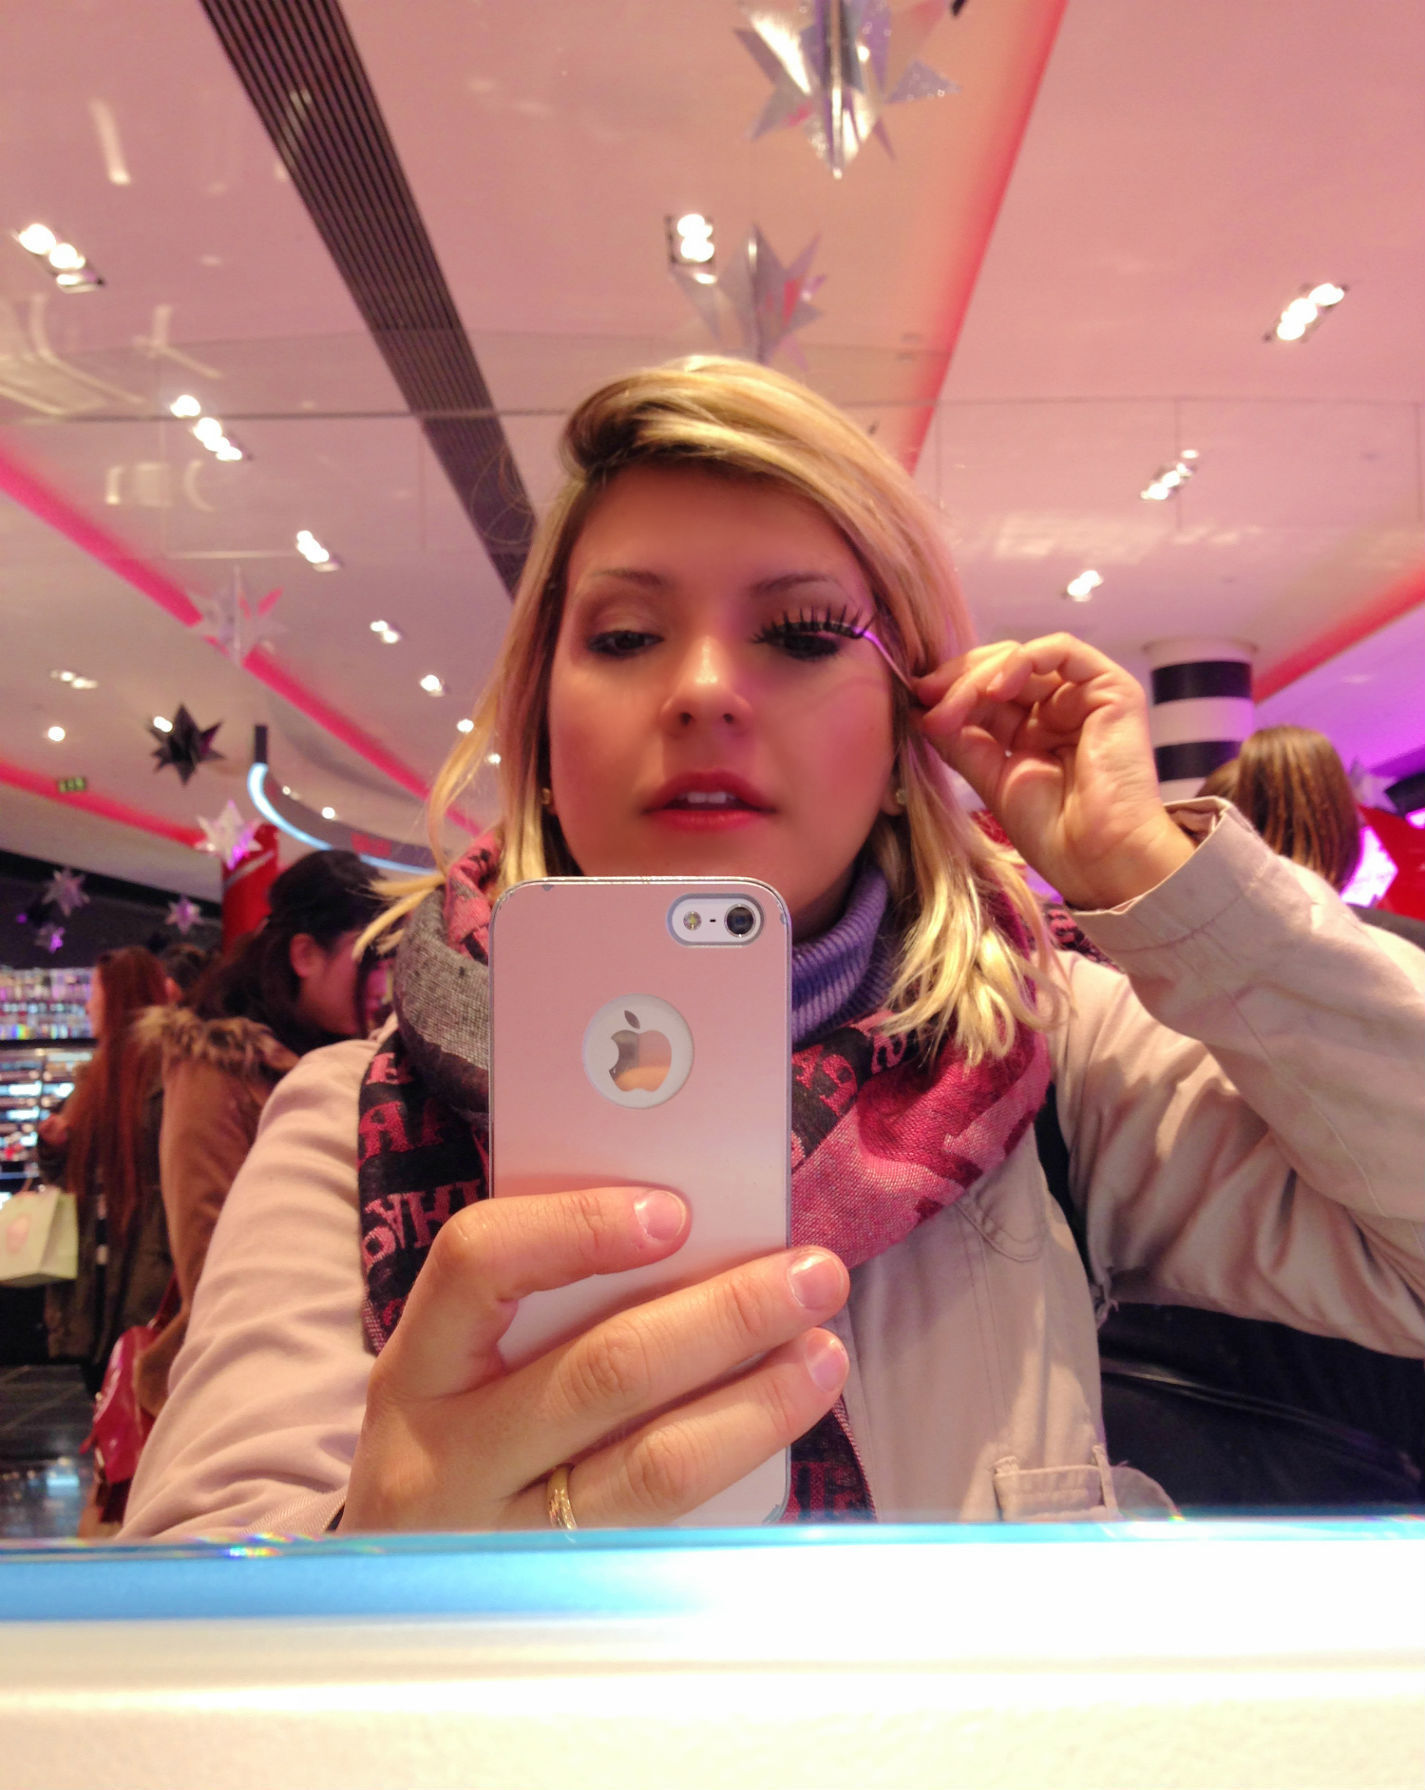 Myself in Sephora - Av. Champs Élysées, Paris